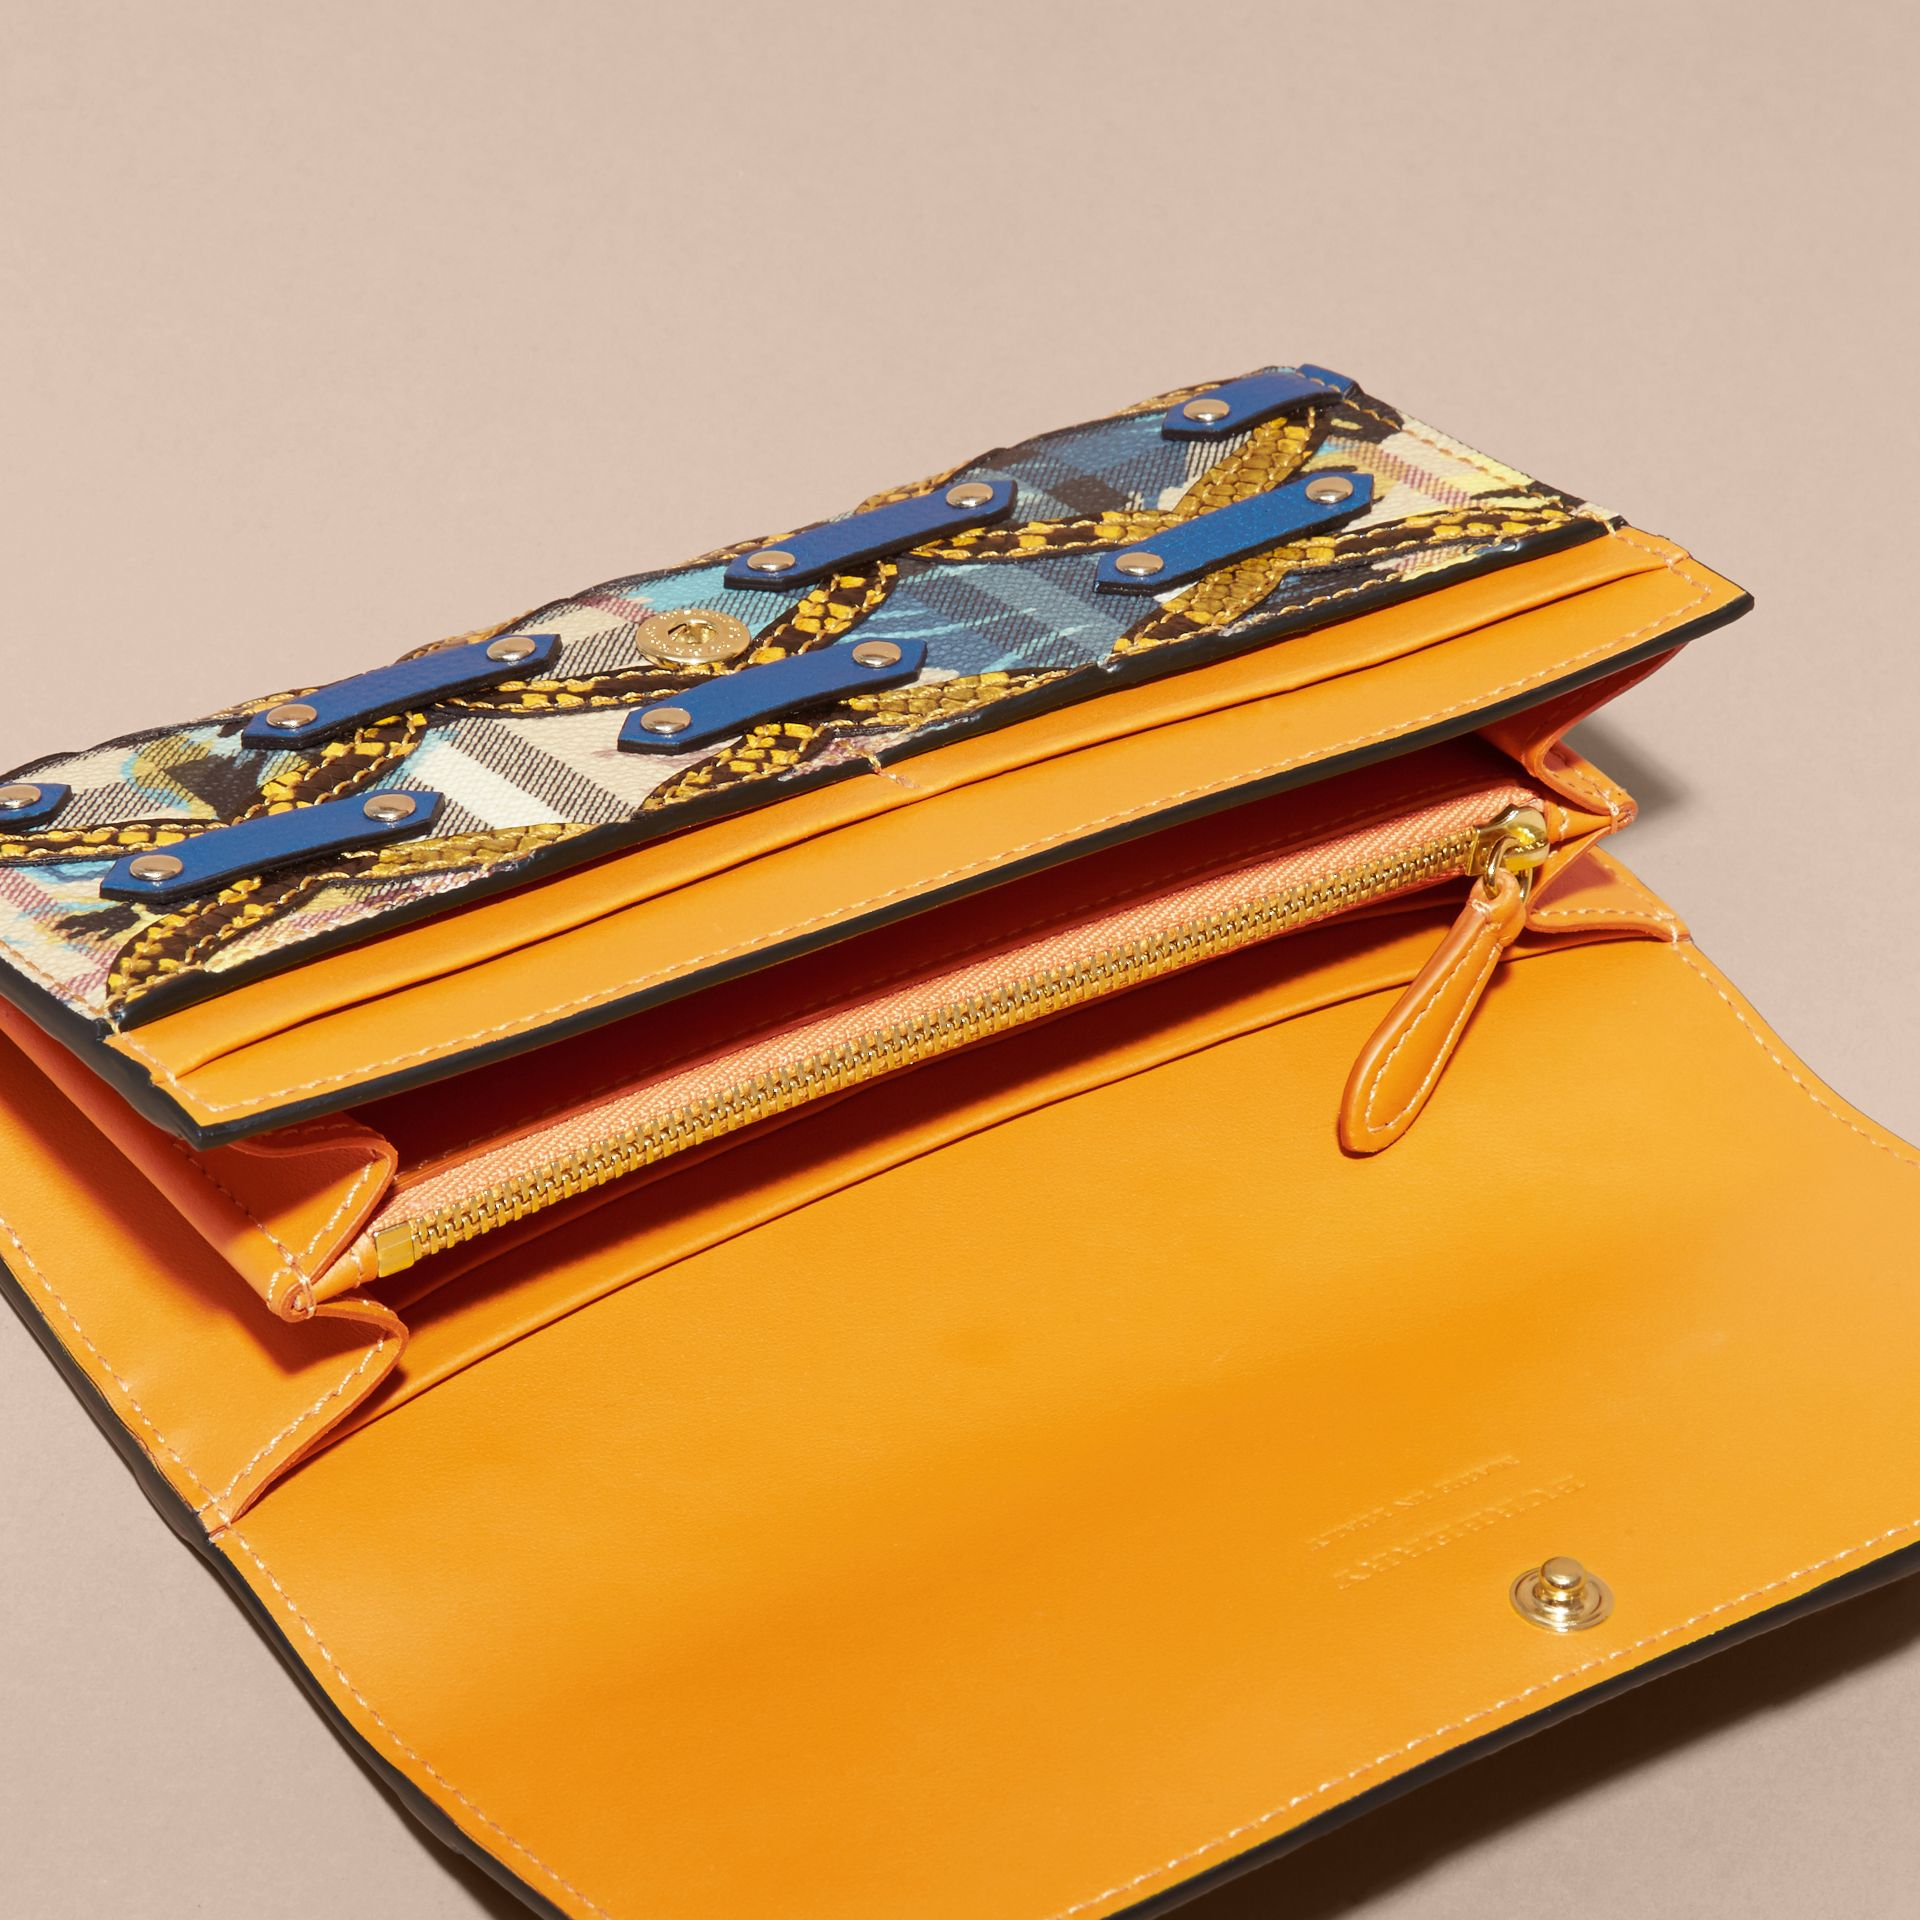 Snakeskin Appliqué Peony Rose Print Haymarket Check Continental Wallet in Mineral Blue - gallery image 5